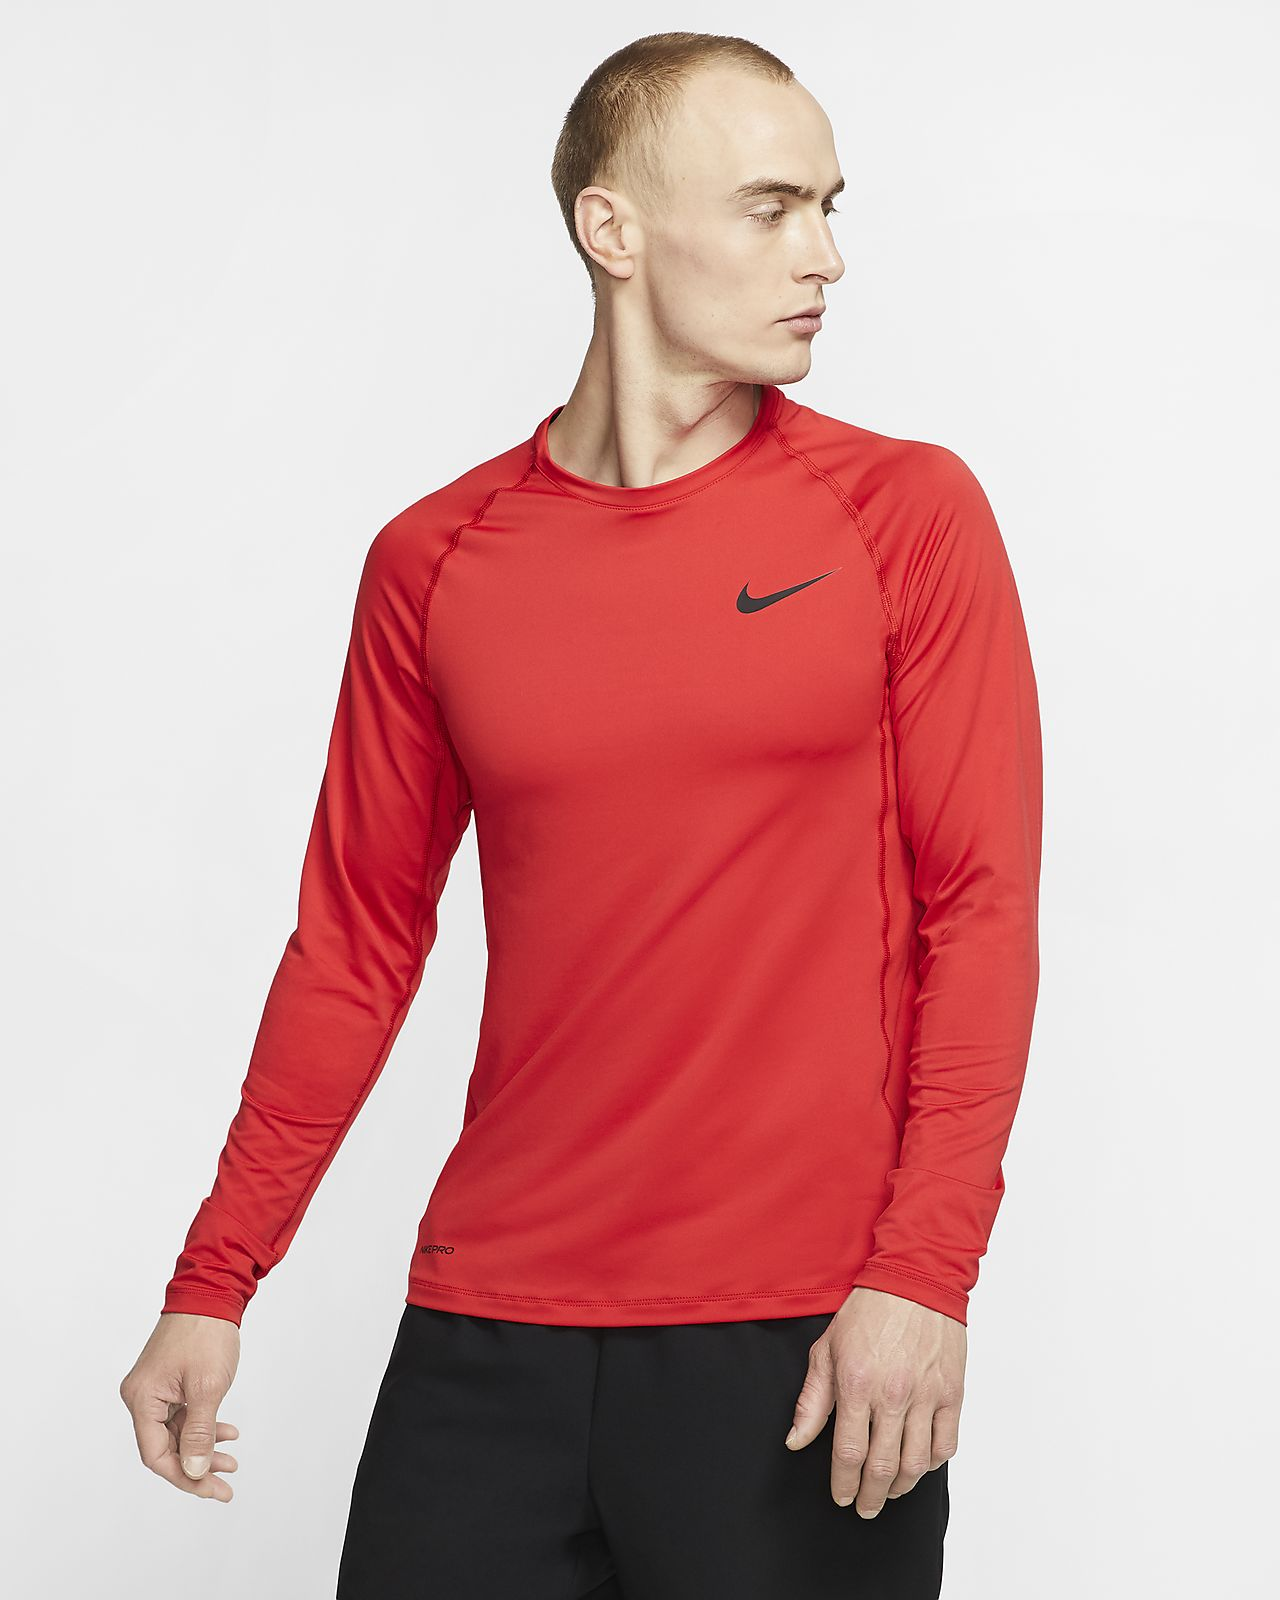 Nike Pro Men's Long-Sleeve Top